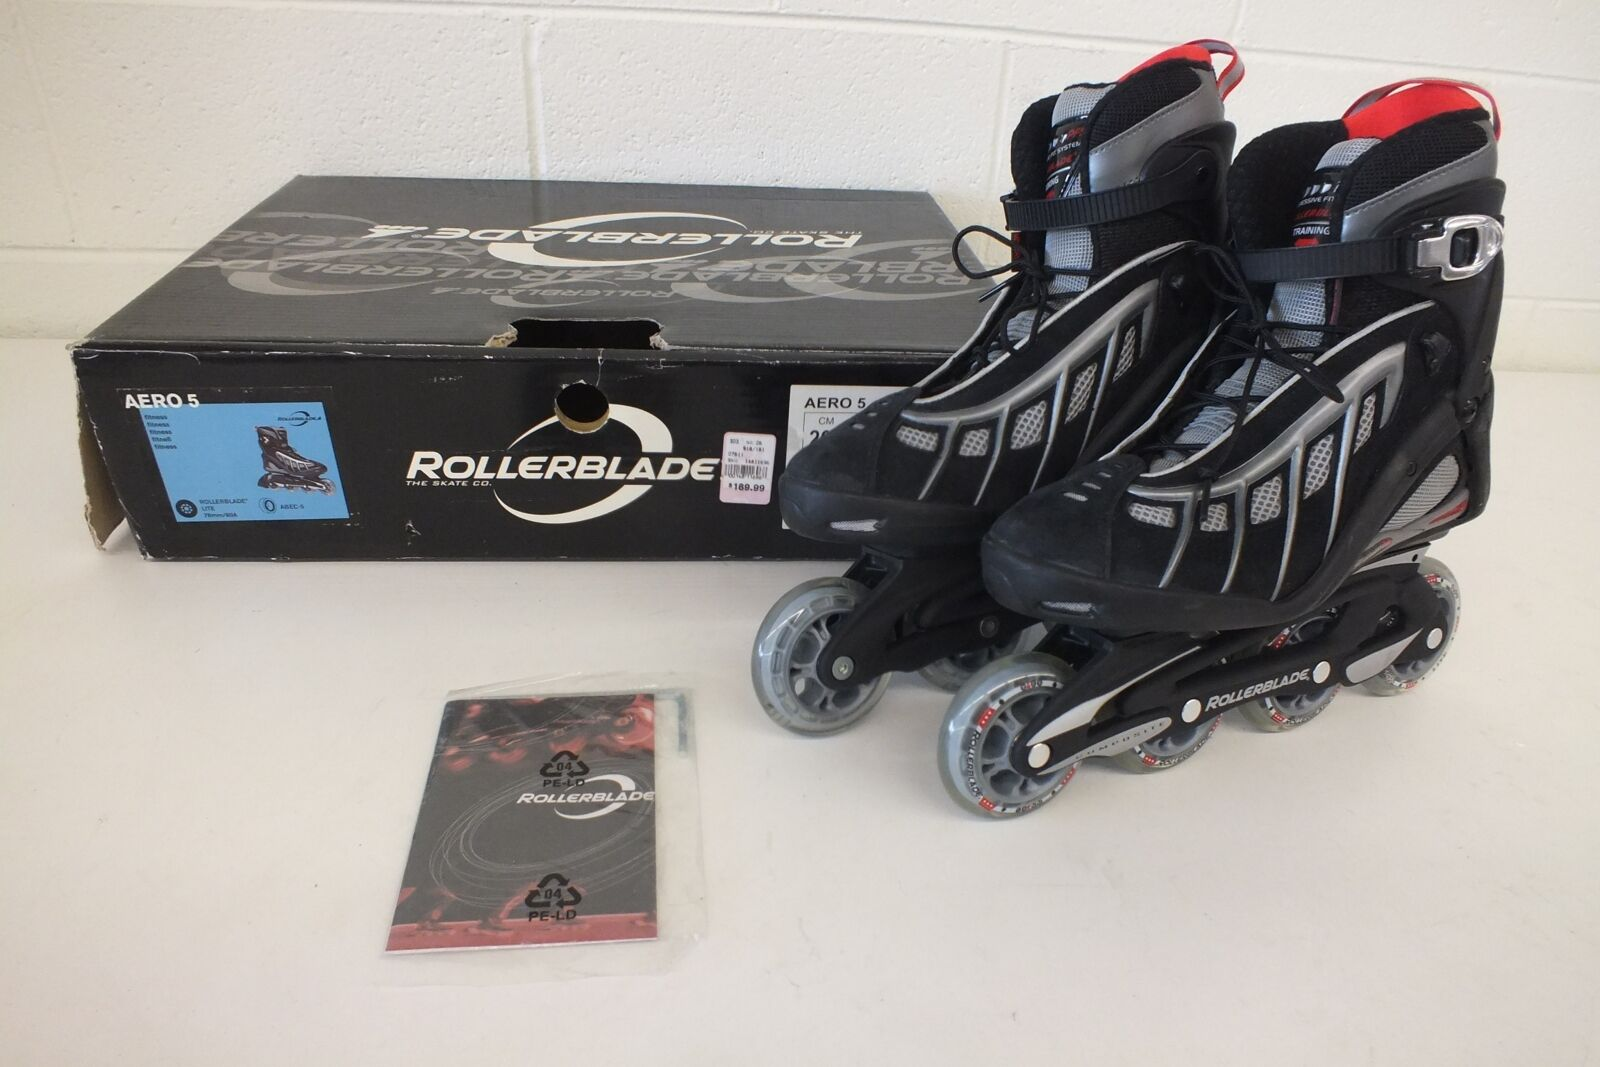 Rollerblade Aero 5 High-Quality Fitness Focused Inline S s Men's 8 40.5 NEW